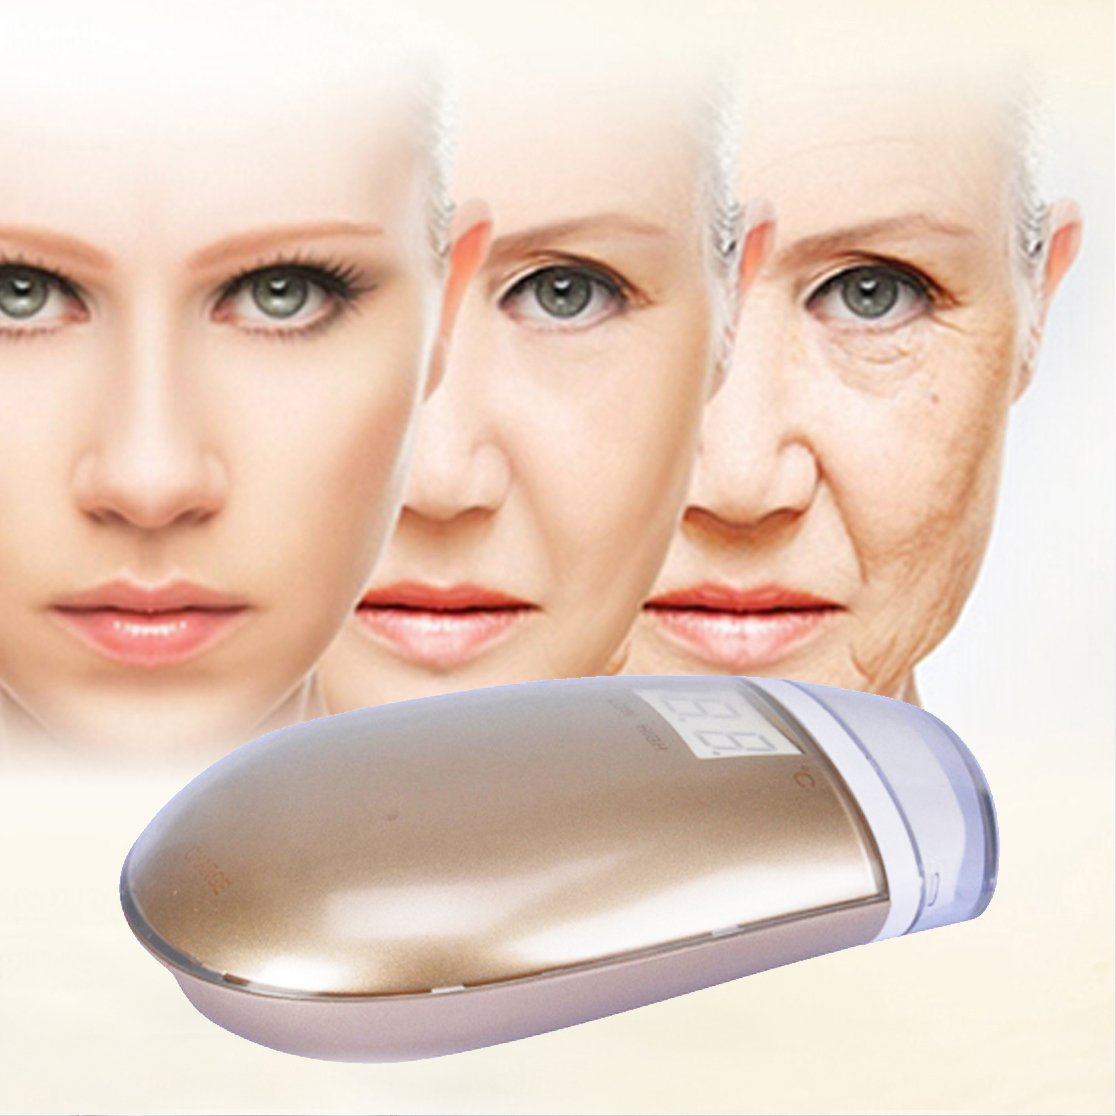 Radiofrequency Face Lift Beauty Wrinkle Remover Anti Aging Radiofrequency Skin Tightening Beauty and Body Weight Loss